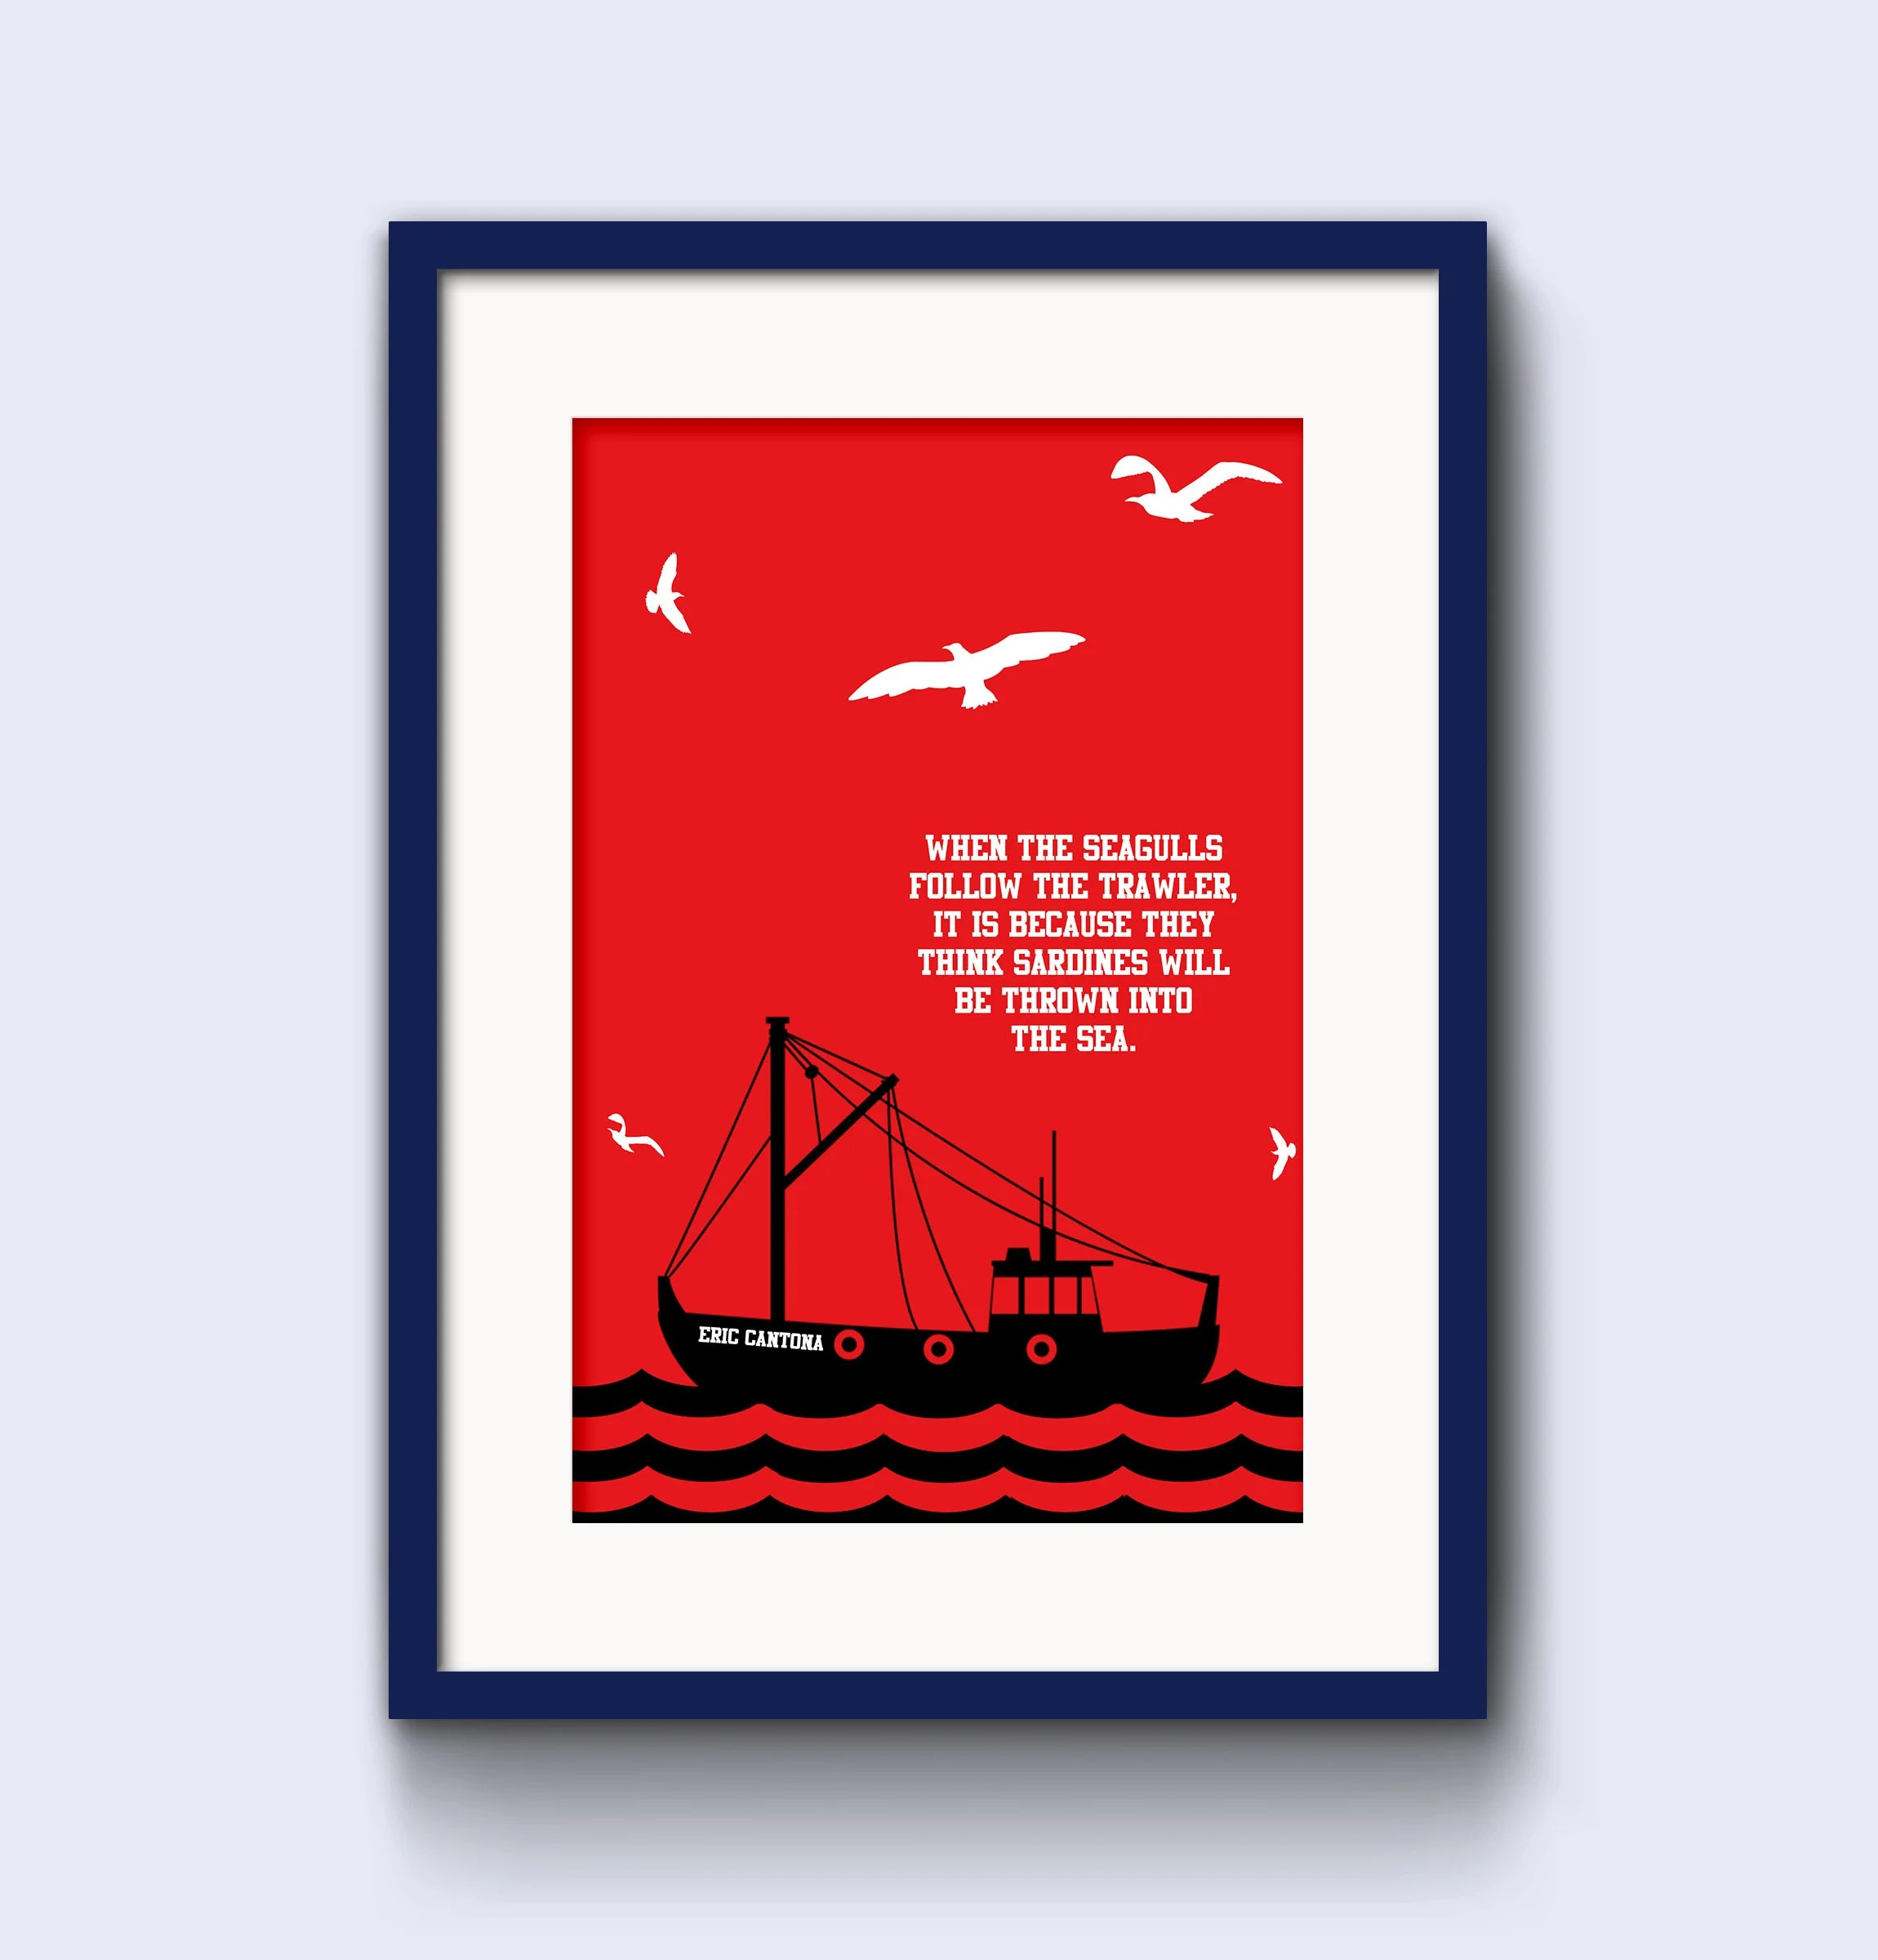 When seagulls follow a trawler, it is because they think sardines will be thrown into the sea. Eric Cantona Seagulls And Sardines Quote High Quality Poster Etsy